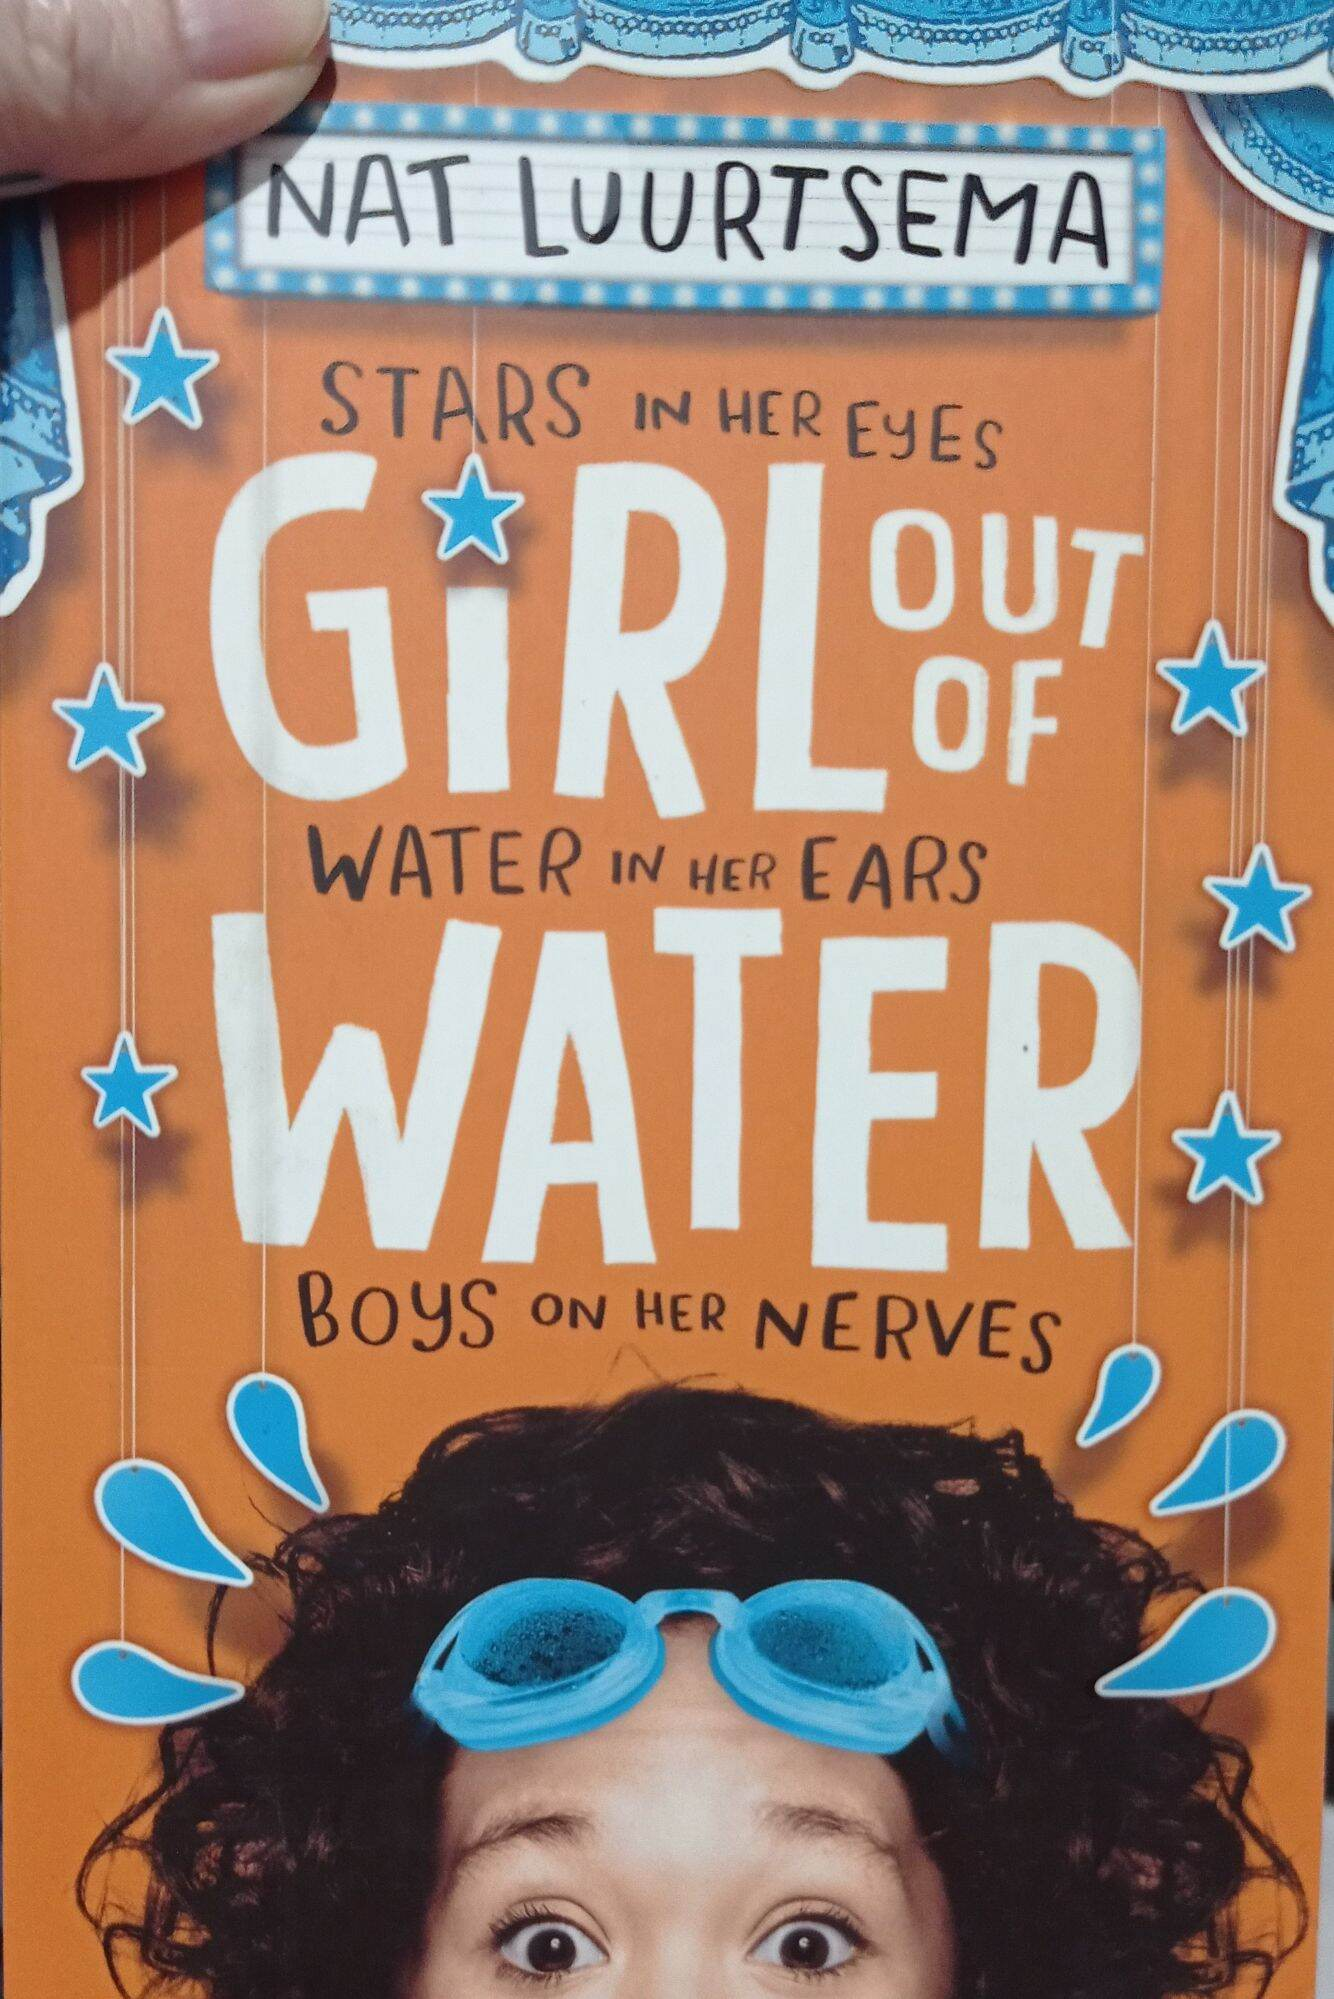 Clearance old stock - Girl Out of Water by Nat Luurtsema - Paperback - Original Guaranteed Malaysia